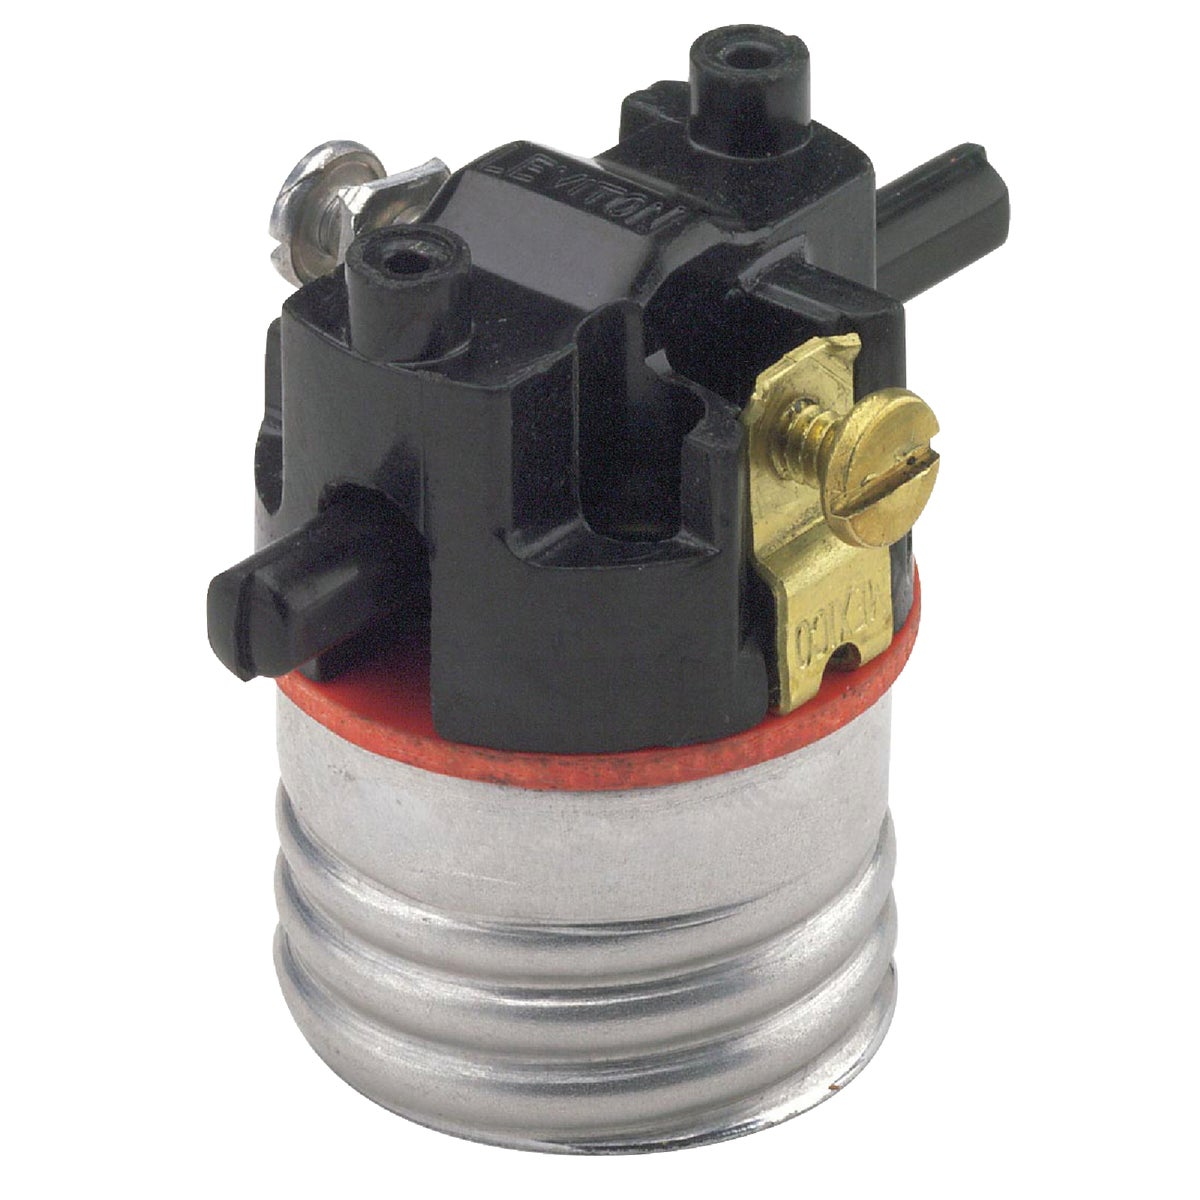 INTERIOR SOCKET - 8757080M by Leviton Mfg Co